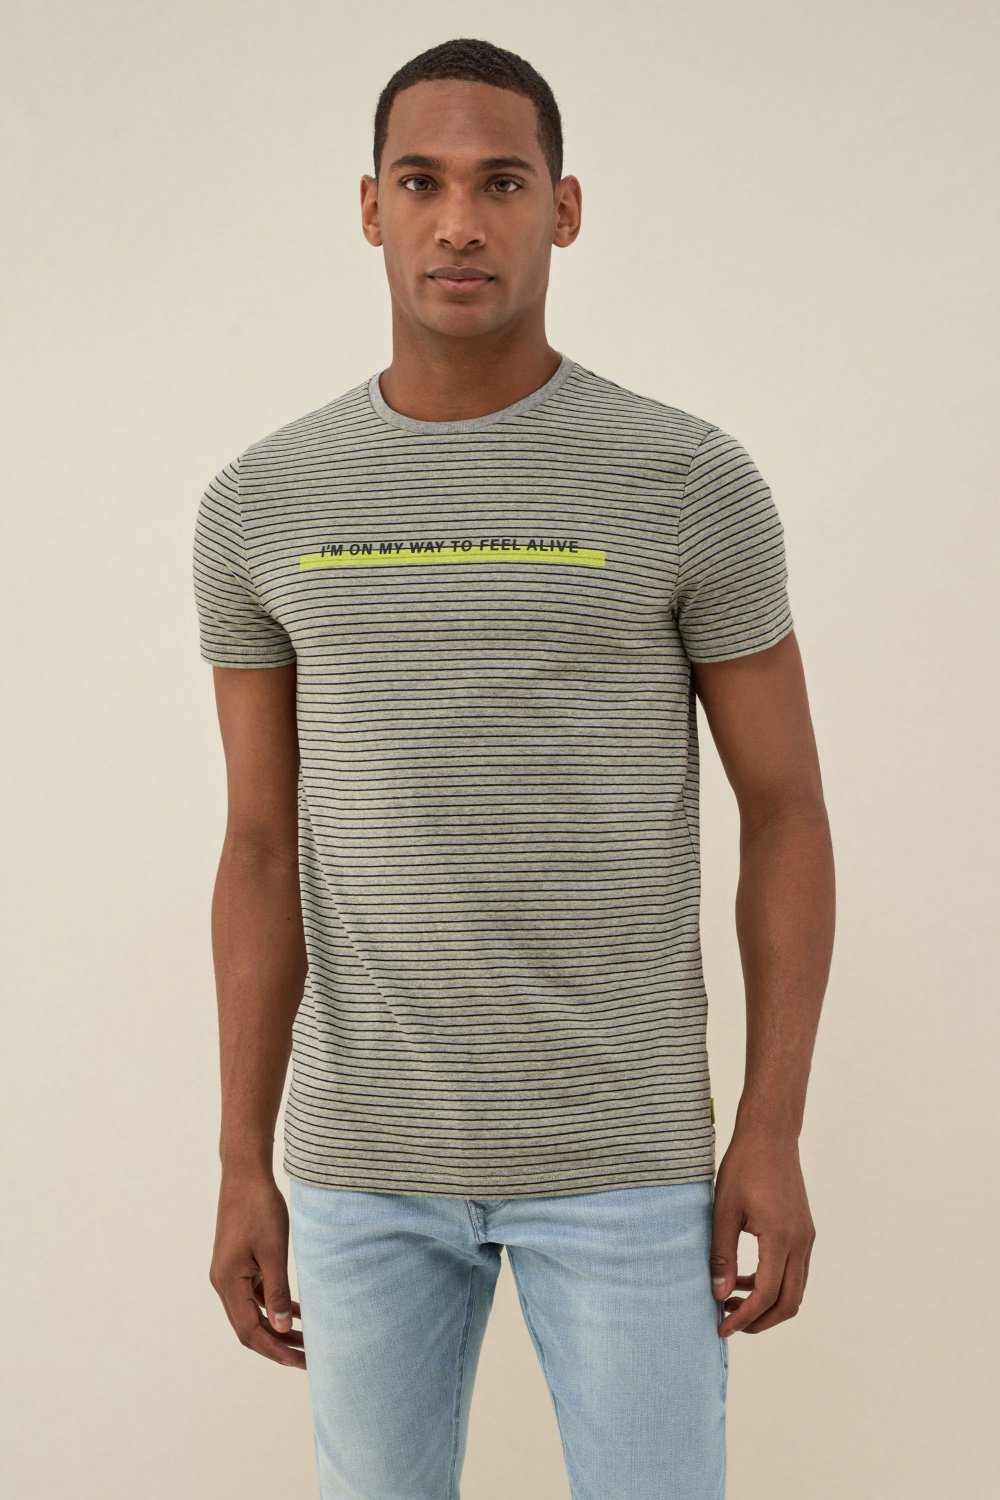 Camiseta dry denim2GO - Salsa